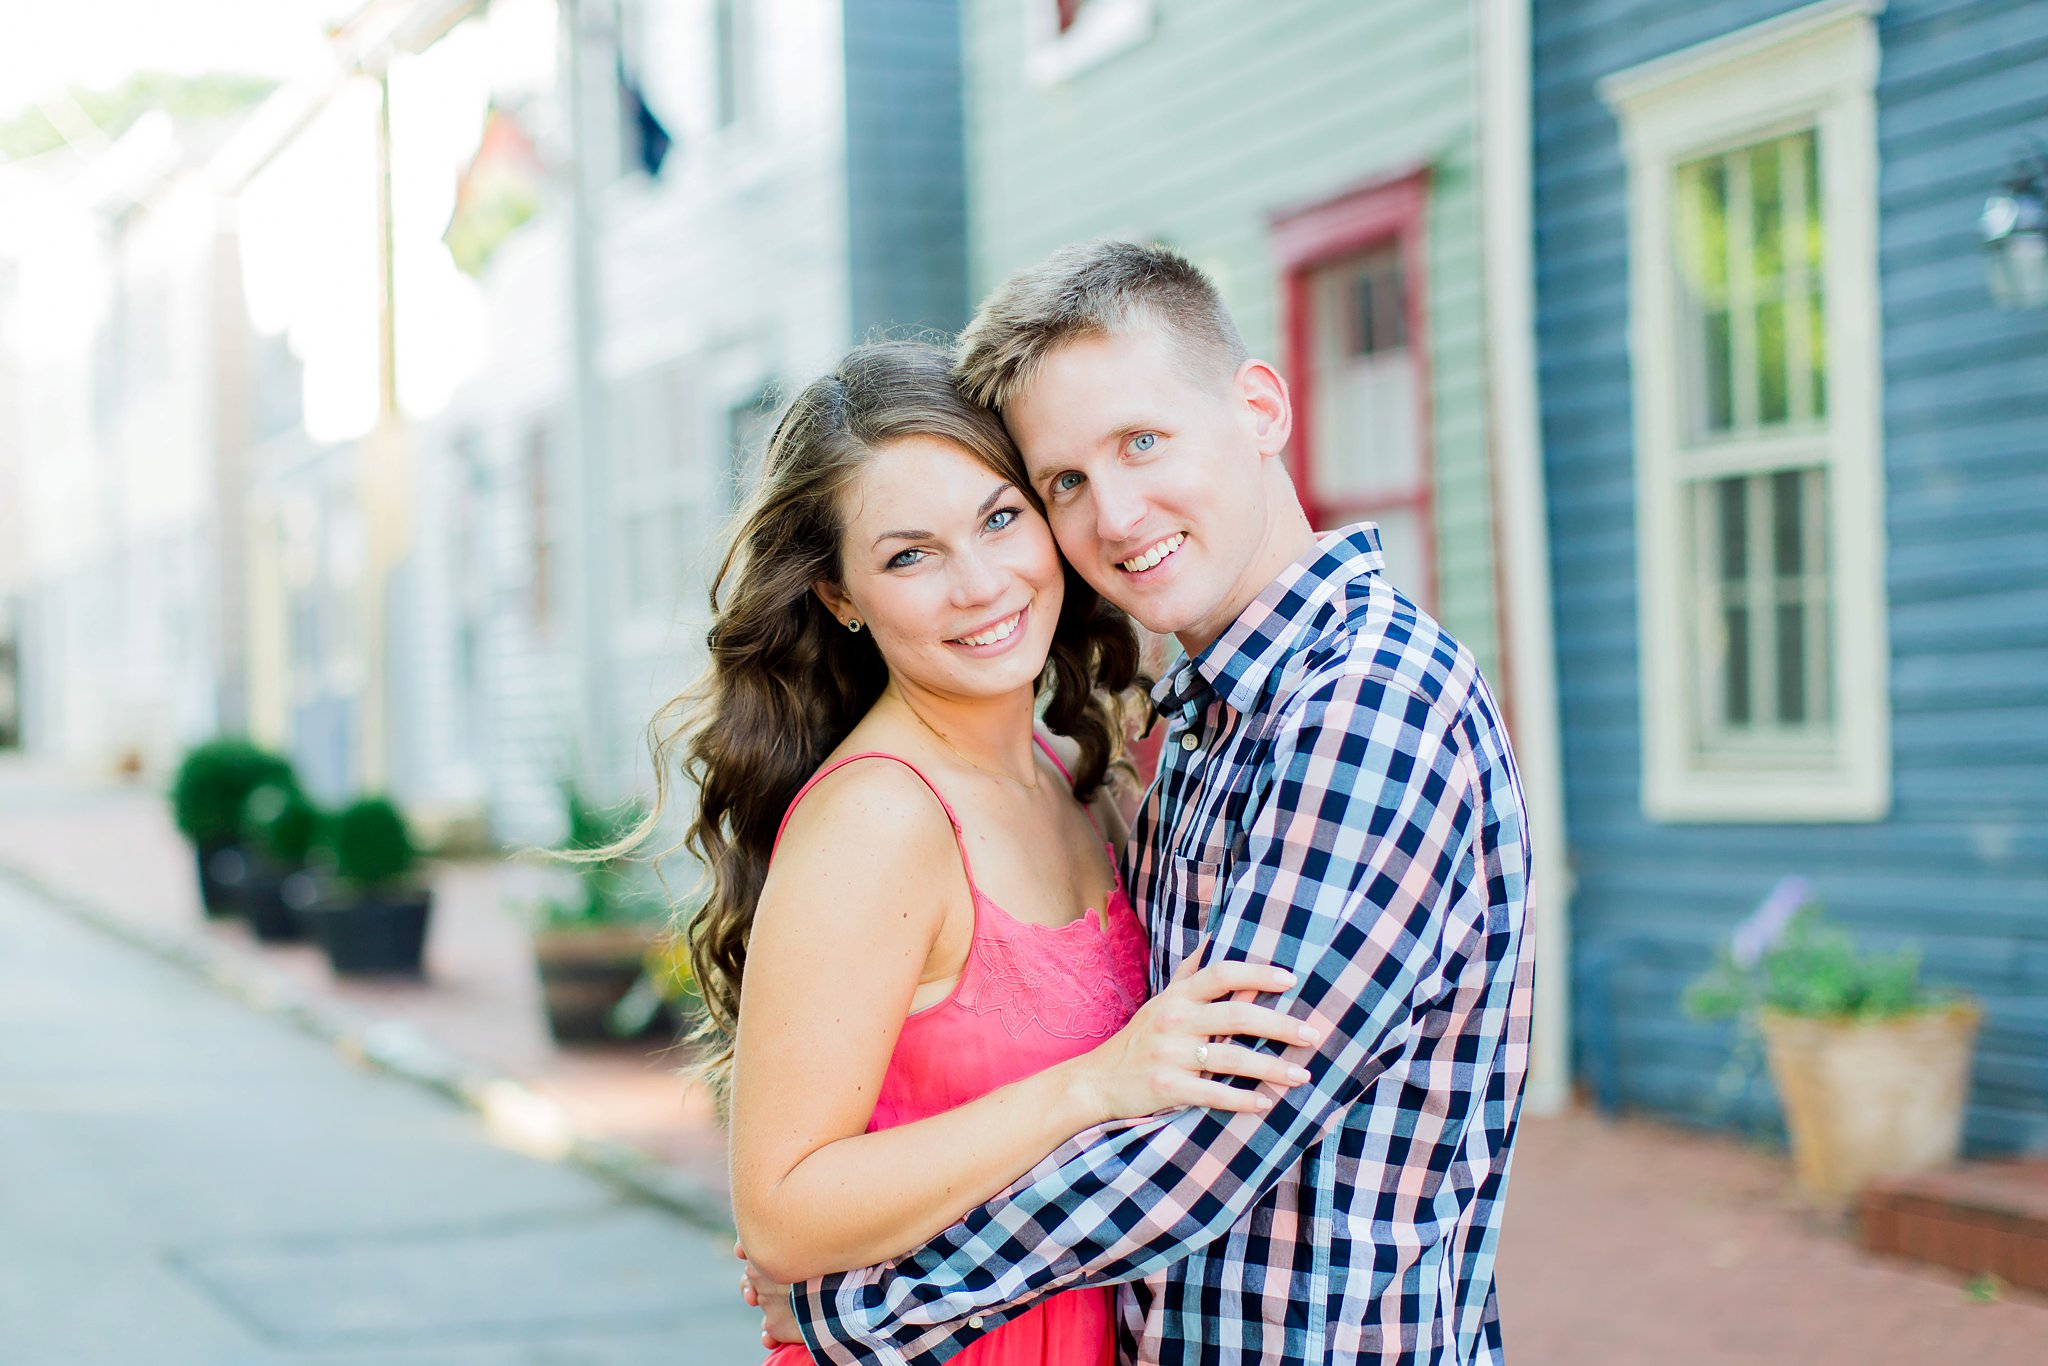 Downtown Annapolis Engagement Photos Maryland Wedding Photographer Megan Kelsey Photography Sam & Angela-80.jpg